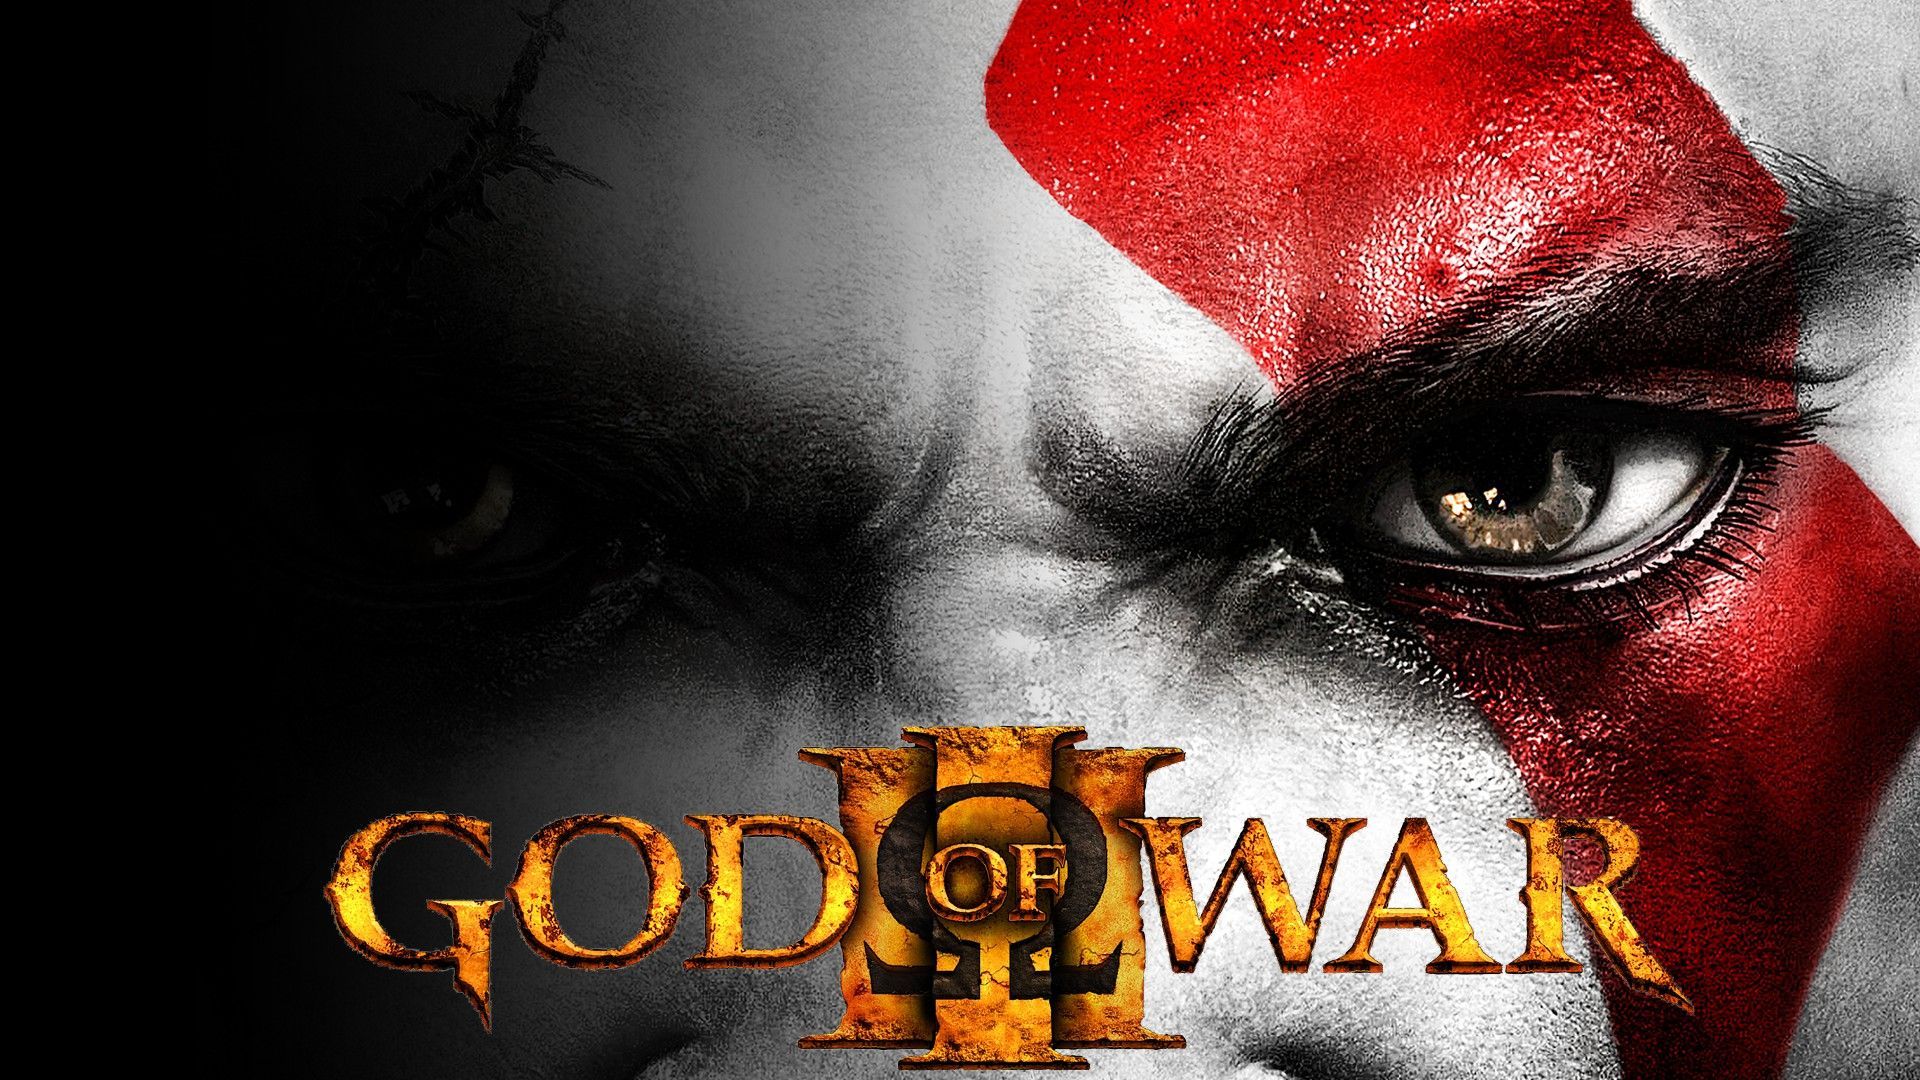 God Of War 3 Wallpapers Top Free God Of War 3 Backgrounds